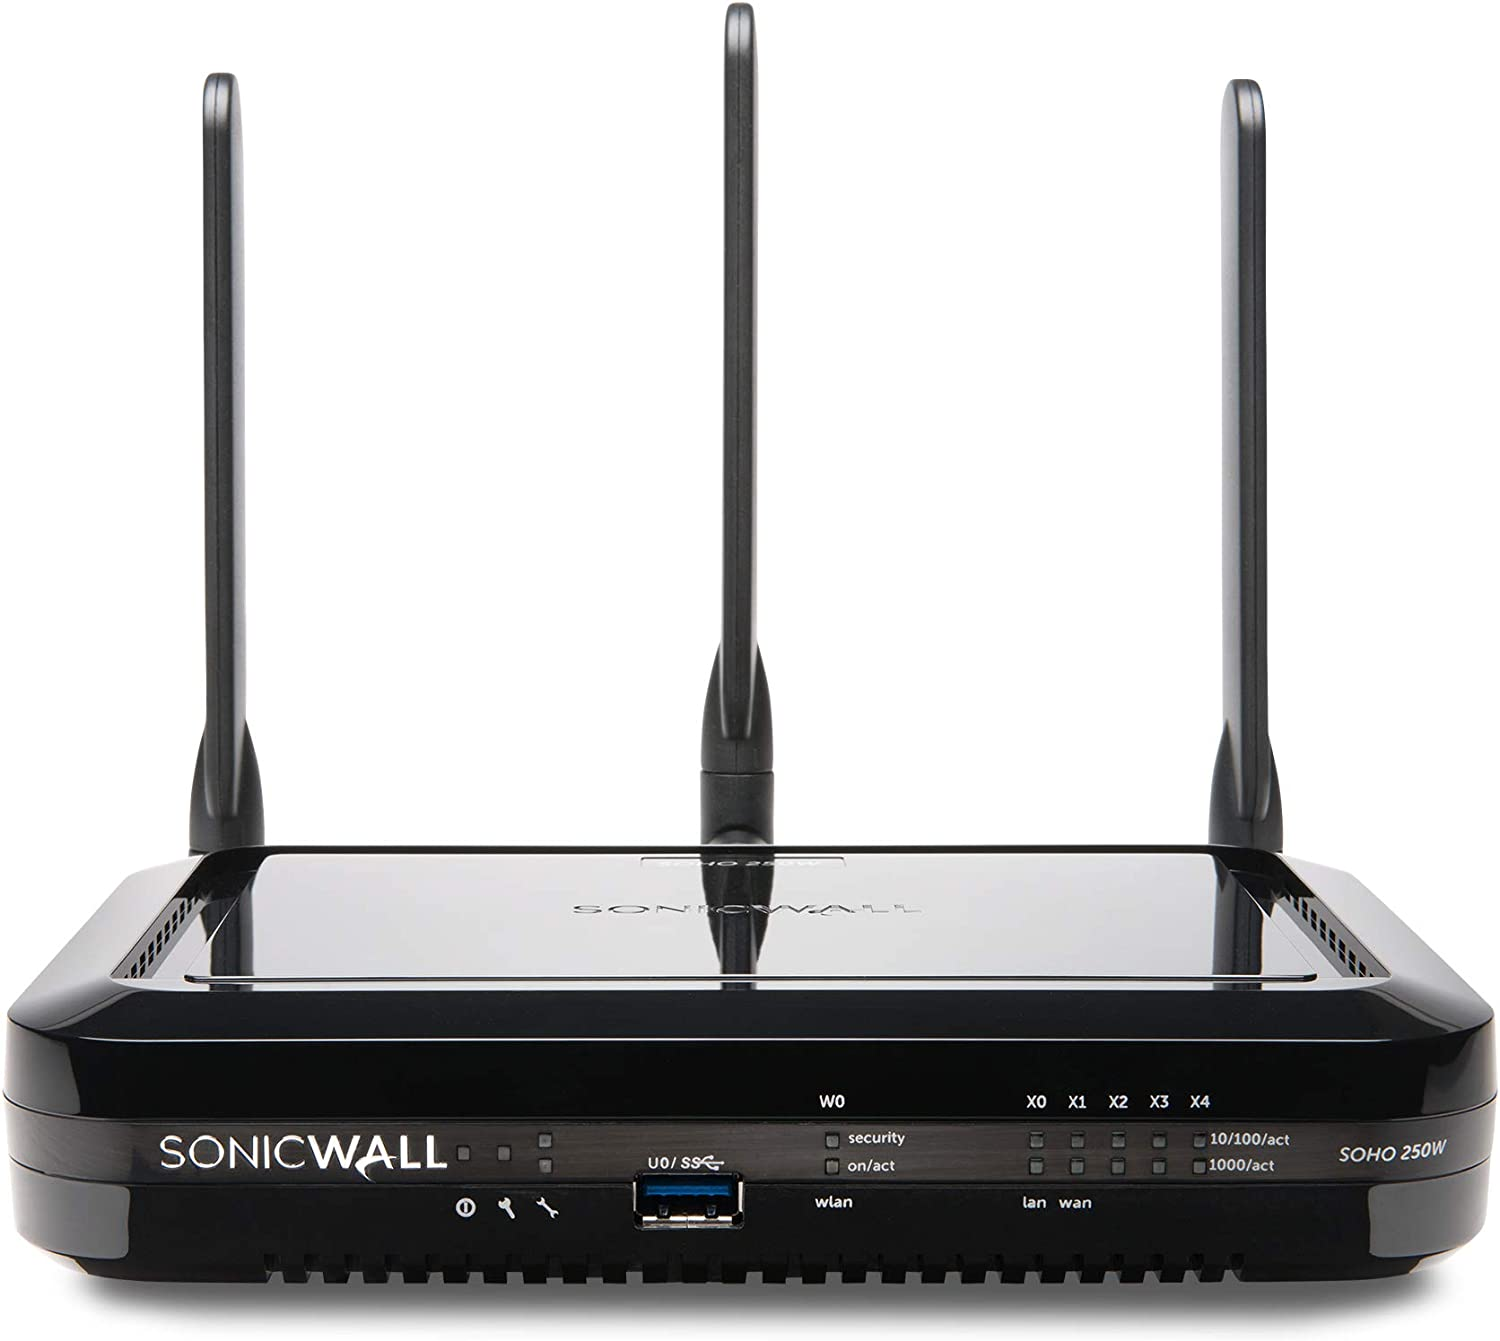 SonicWall SOHO 250 Wireless Network Security Appliance and 3YR Secure Upgrade Plus Bundle with 5 User SSL VPN (02-SSC-1832+01-SSC-8630)